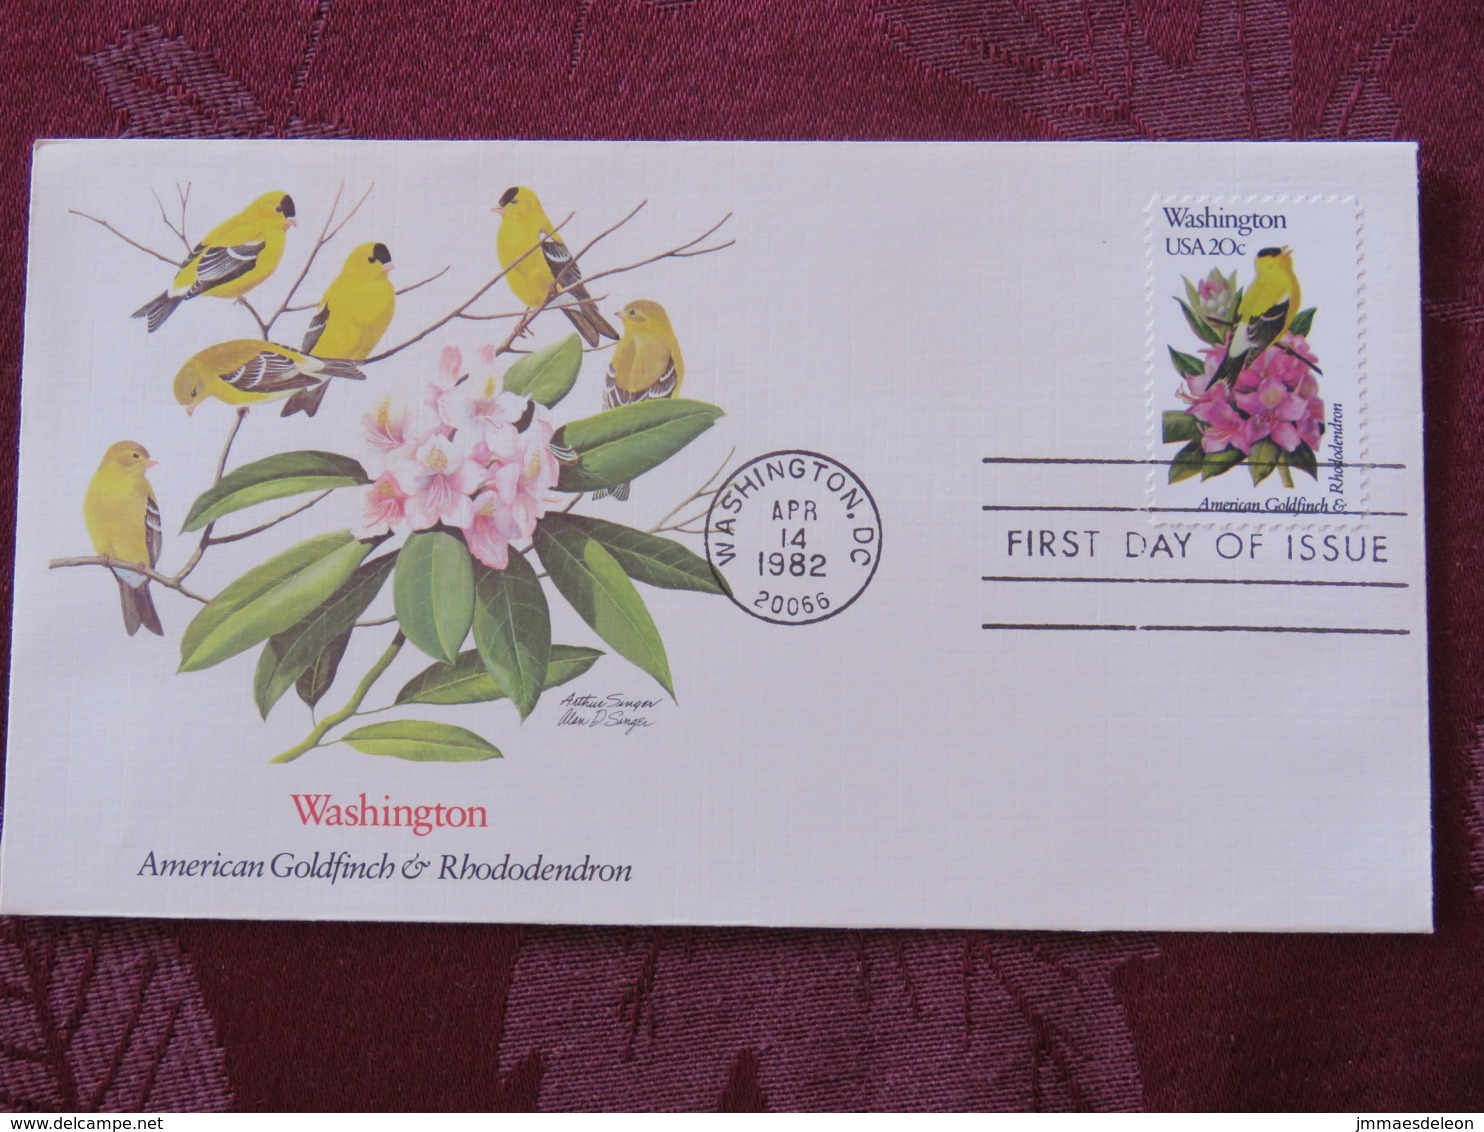 USA 1982 FDC Cover Washington - Washington State Bird And Flower - Goldfinch - Rhododendron - Lettres & Documents